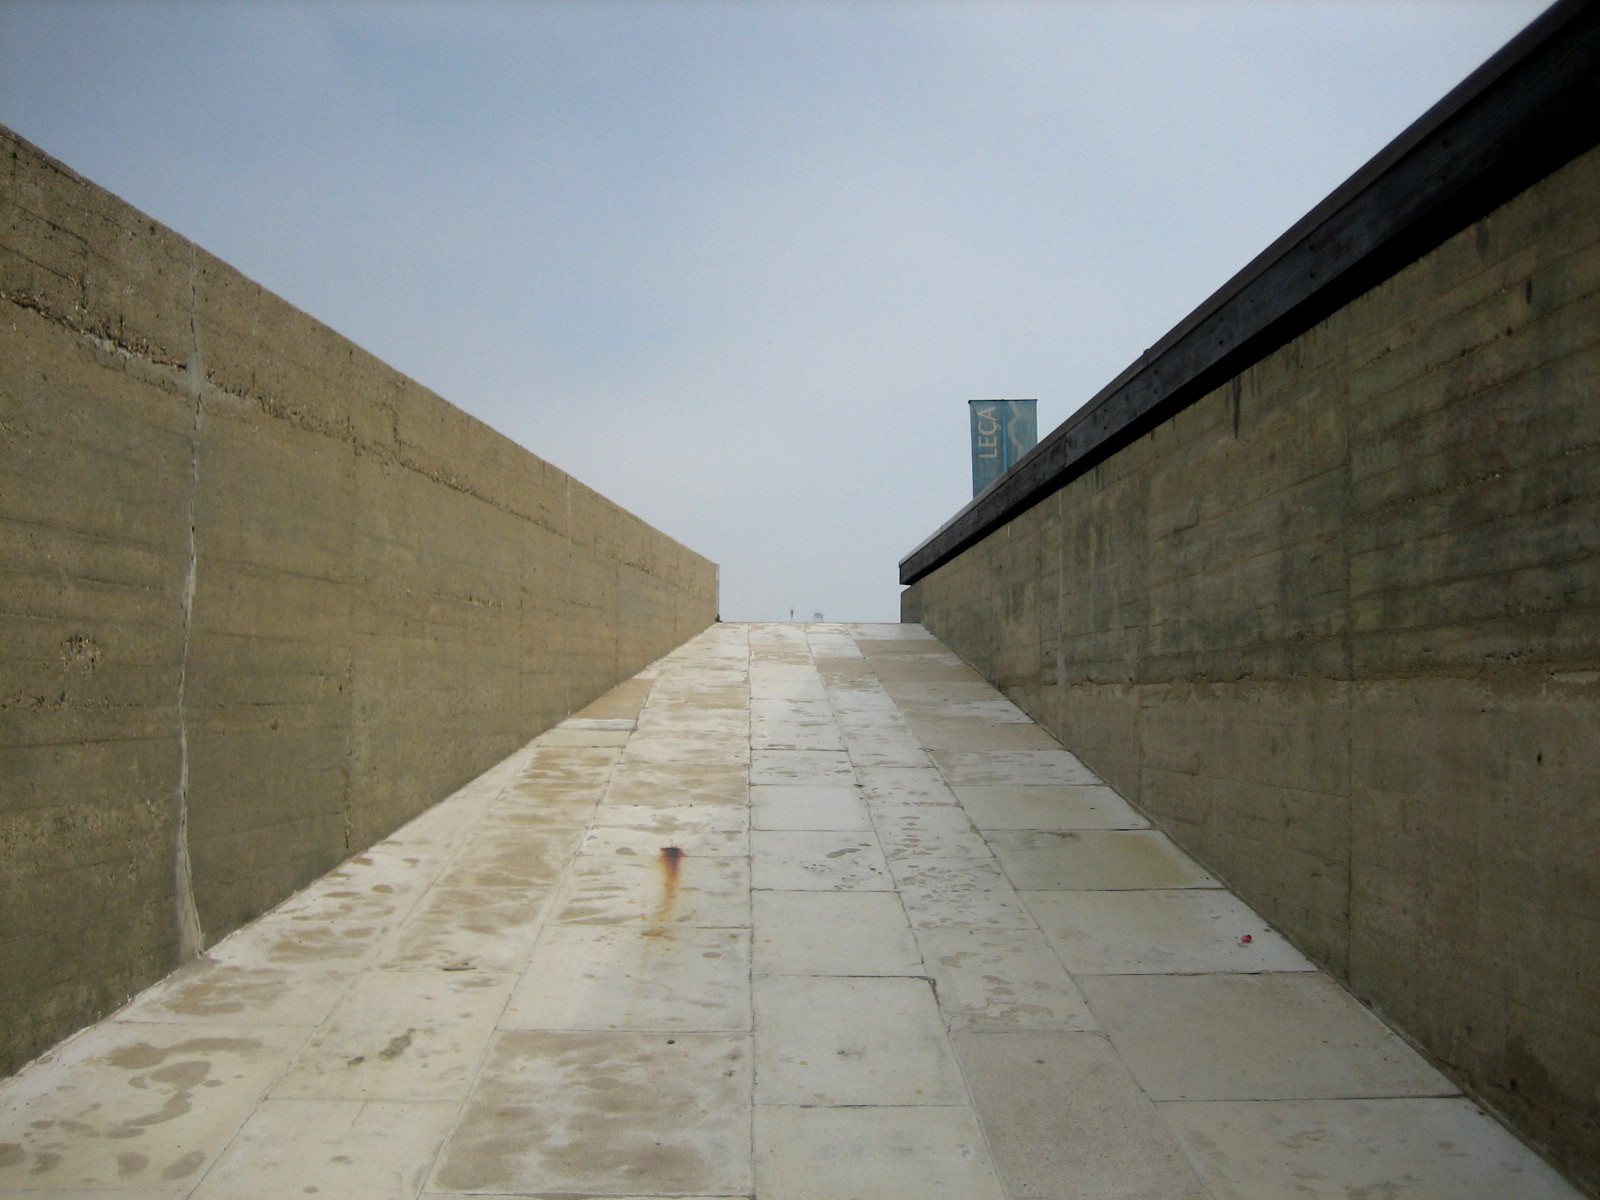 Gallery of ad classics le a swimming pools lvaro siza vieira 3 for Alvaro siza leca swimming pools